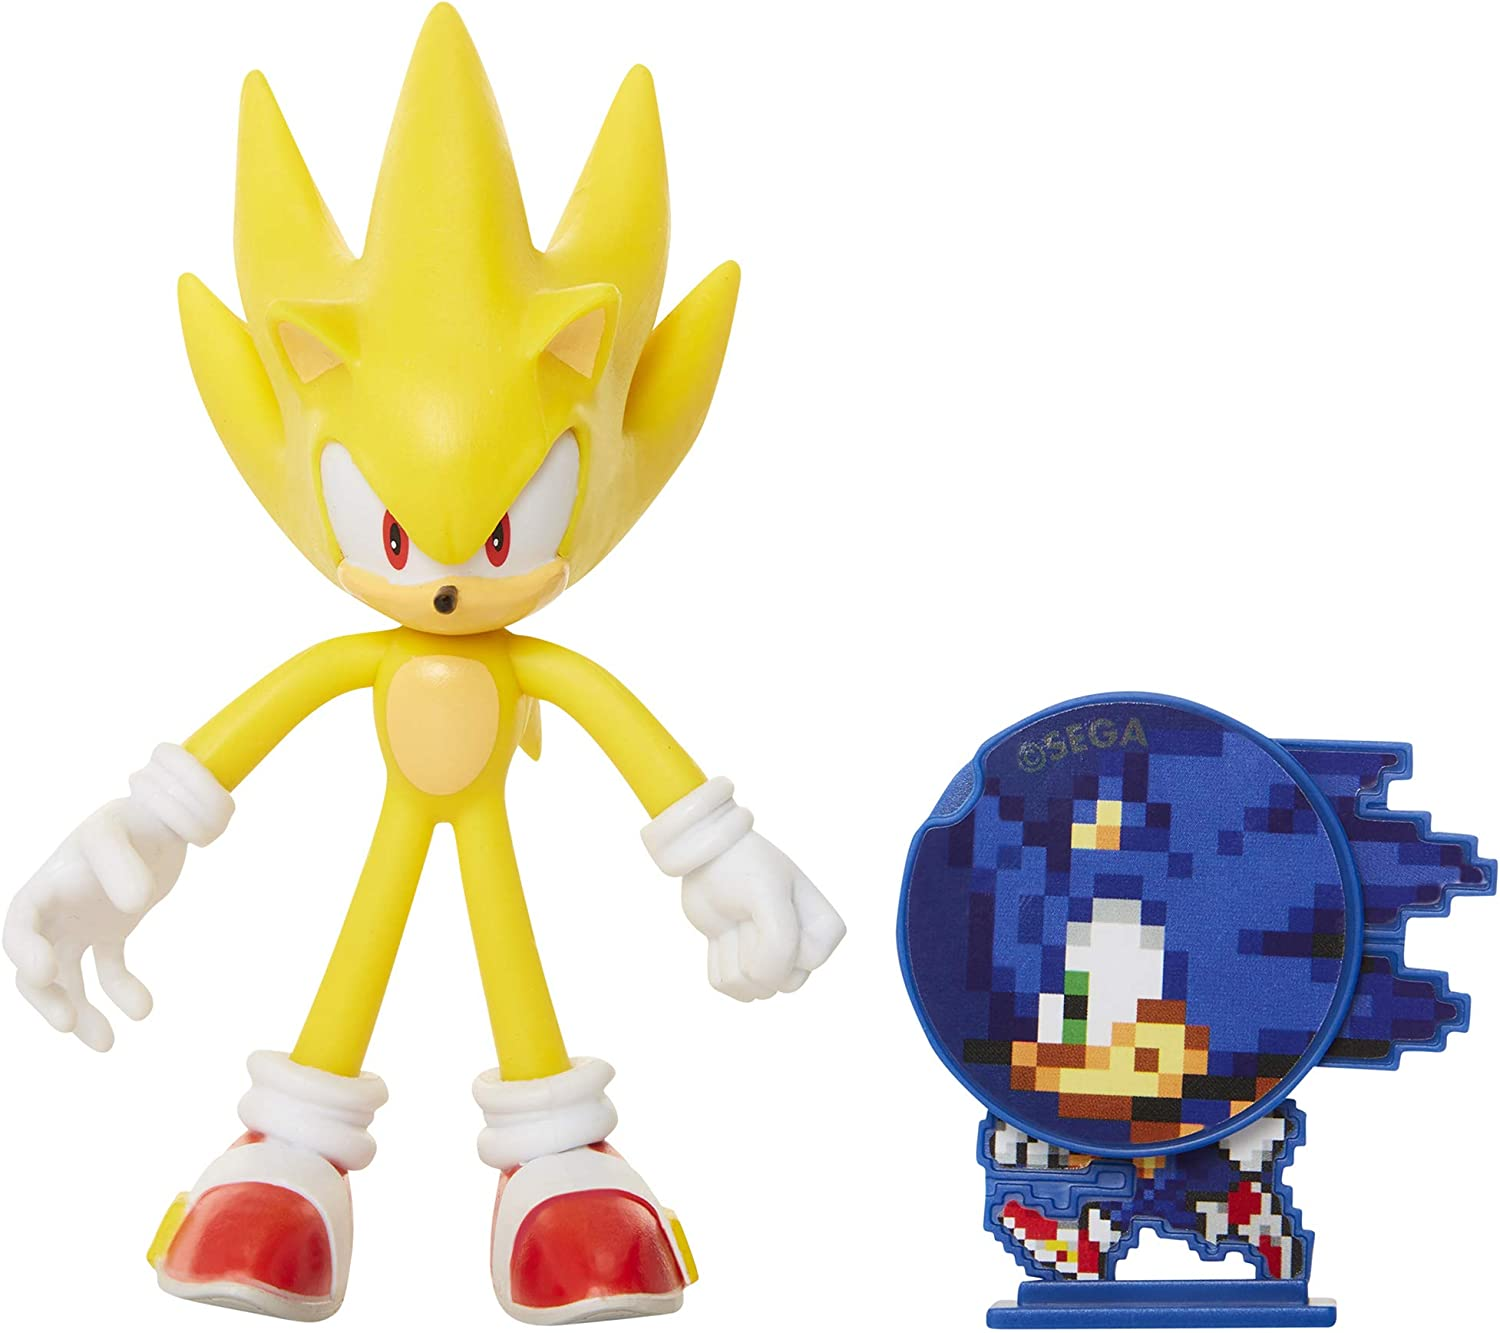 Amazon Com Sonic The Hedgehog Collectible Super Sonic 4 Bendable Flexible Action Figure With Bendable Limbs Spinable Friend Disk Accessory Perfect For Kids Collectors Alike For Ages 3 400574 Toys